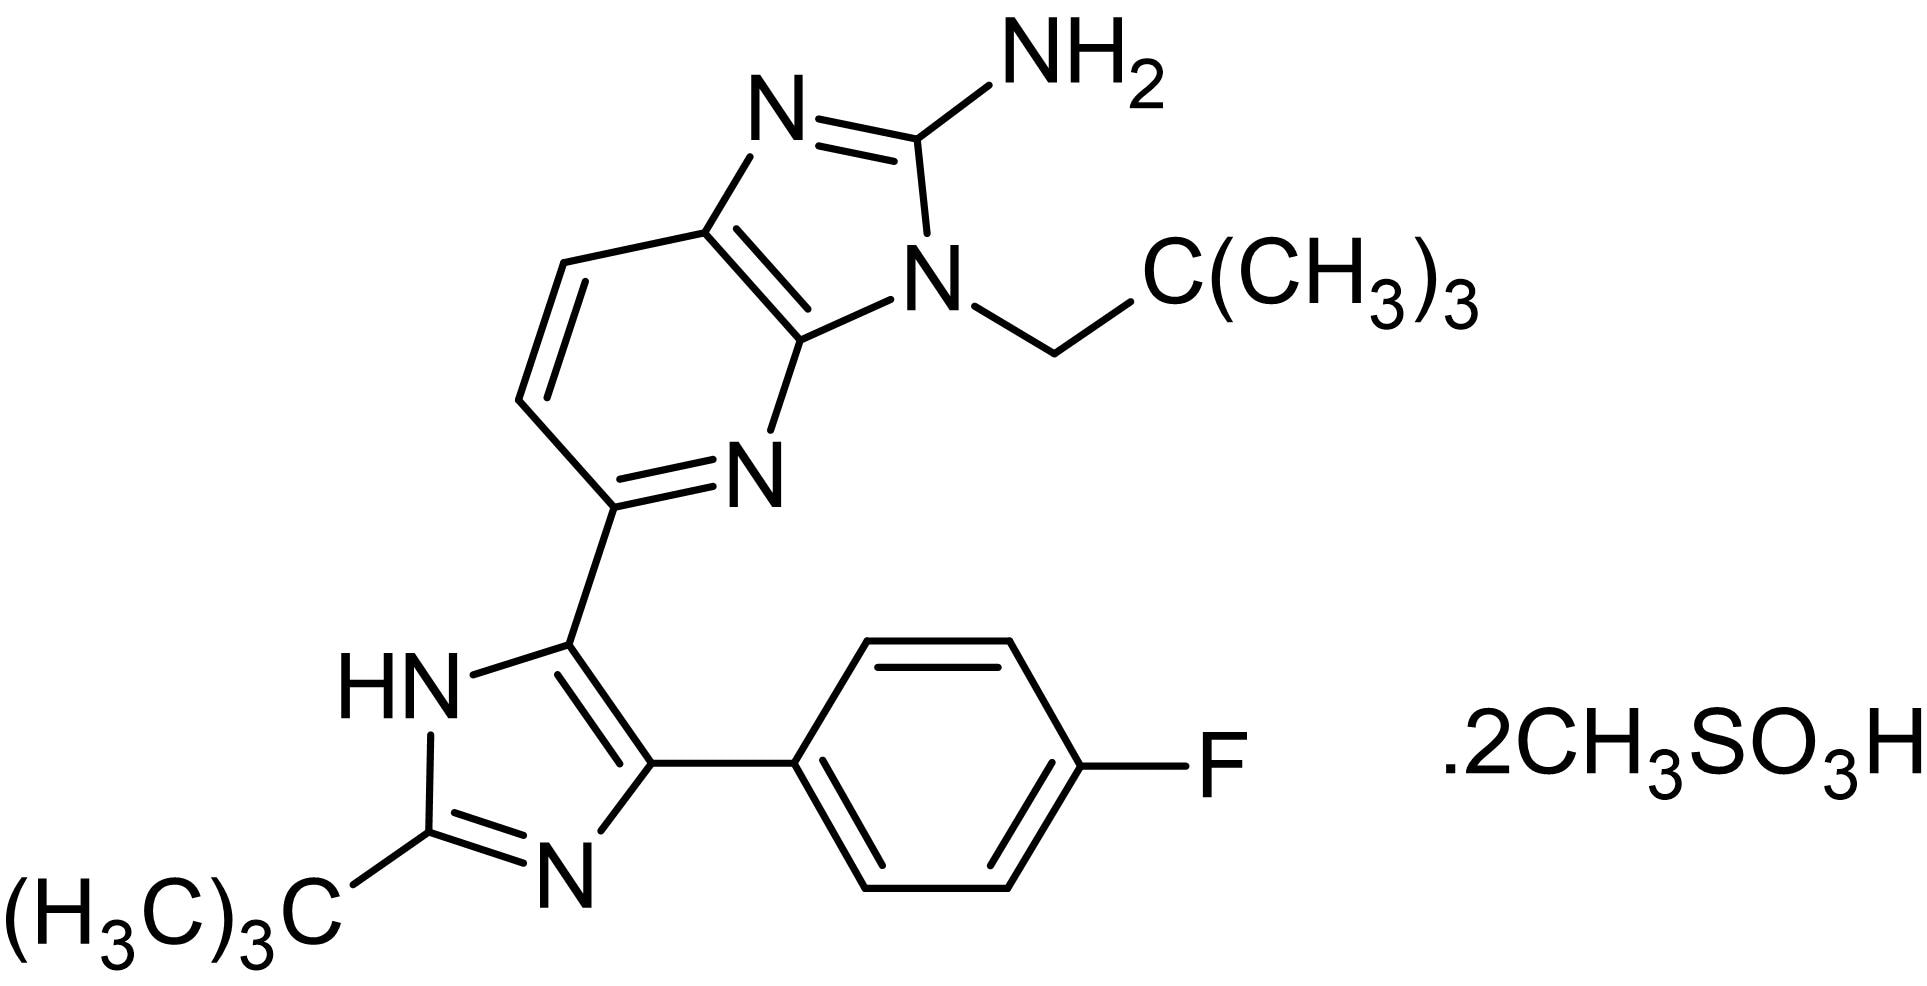 Chemical Structure - LY 2228820, p38 MAPK inhibitor (ab143833)